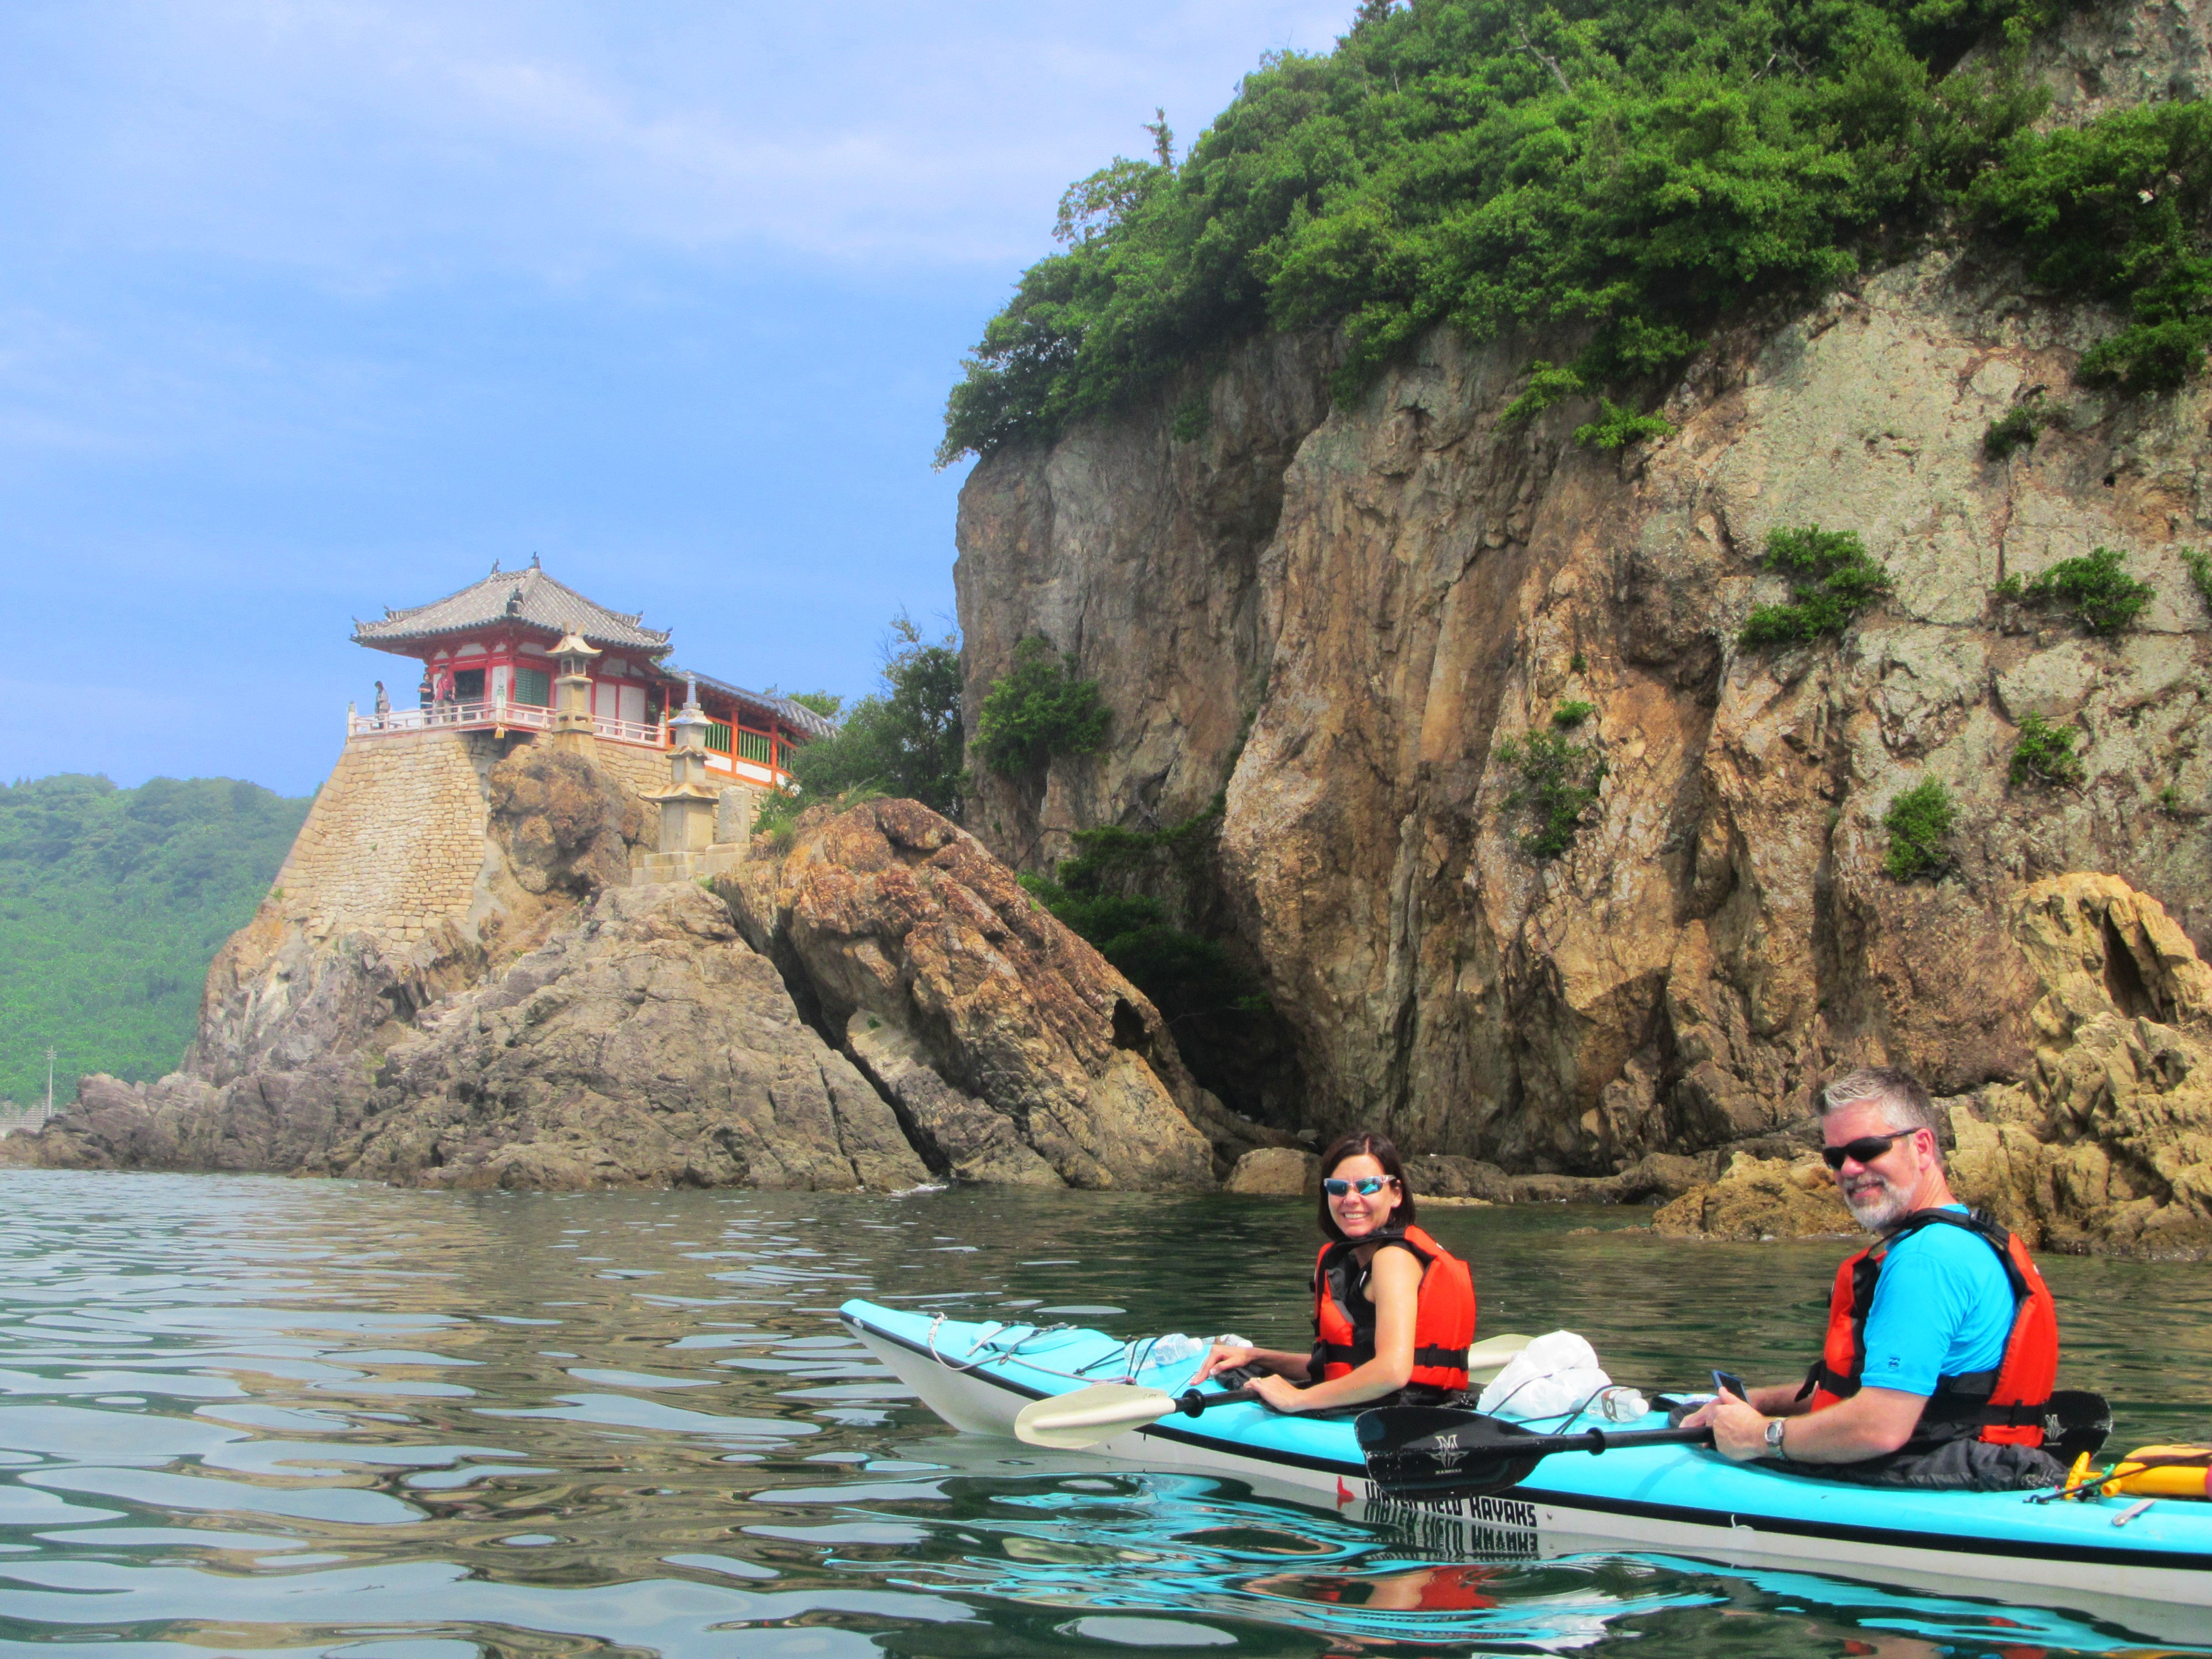 One Day Kayak Tour of the Beautiful Sea Used in Movies